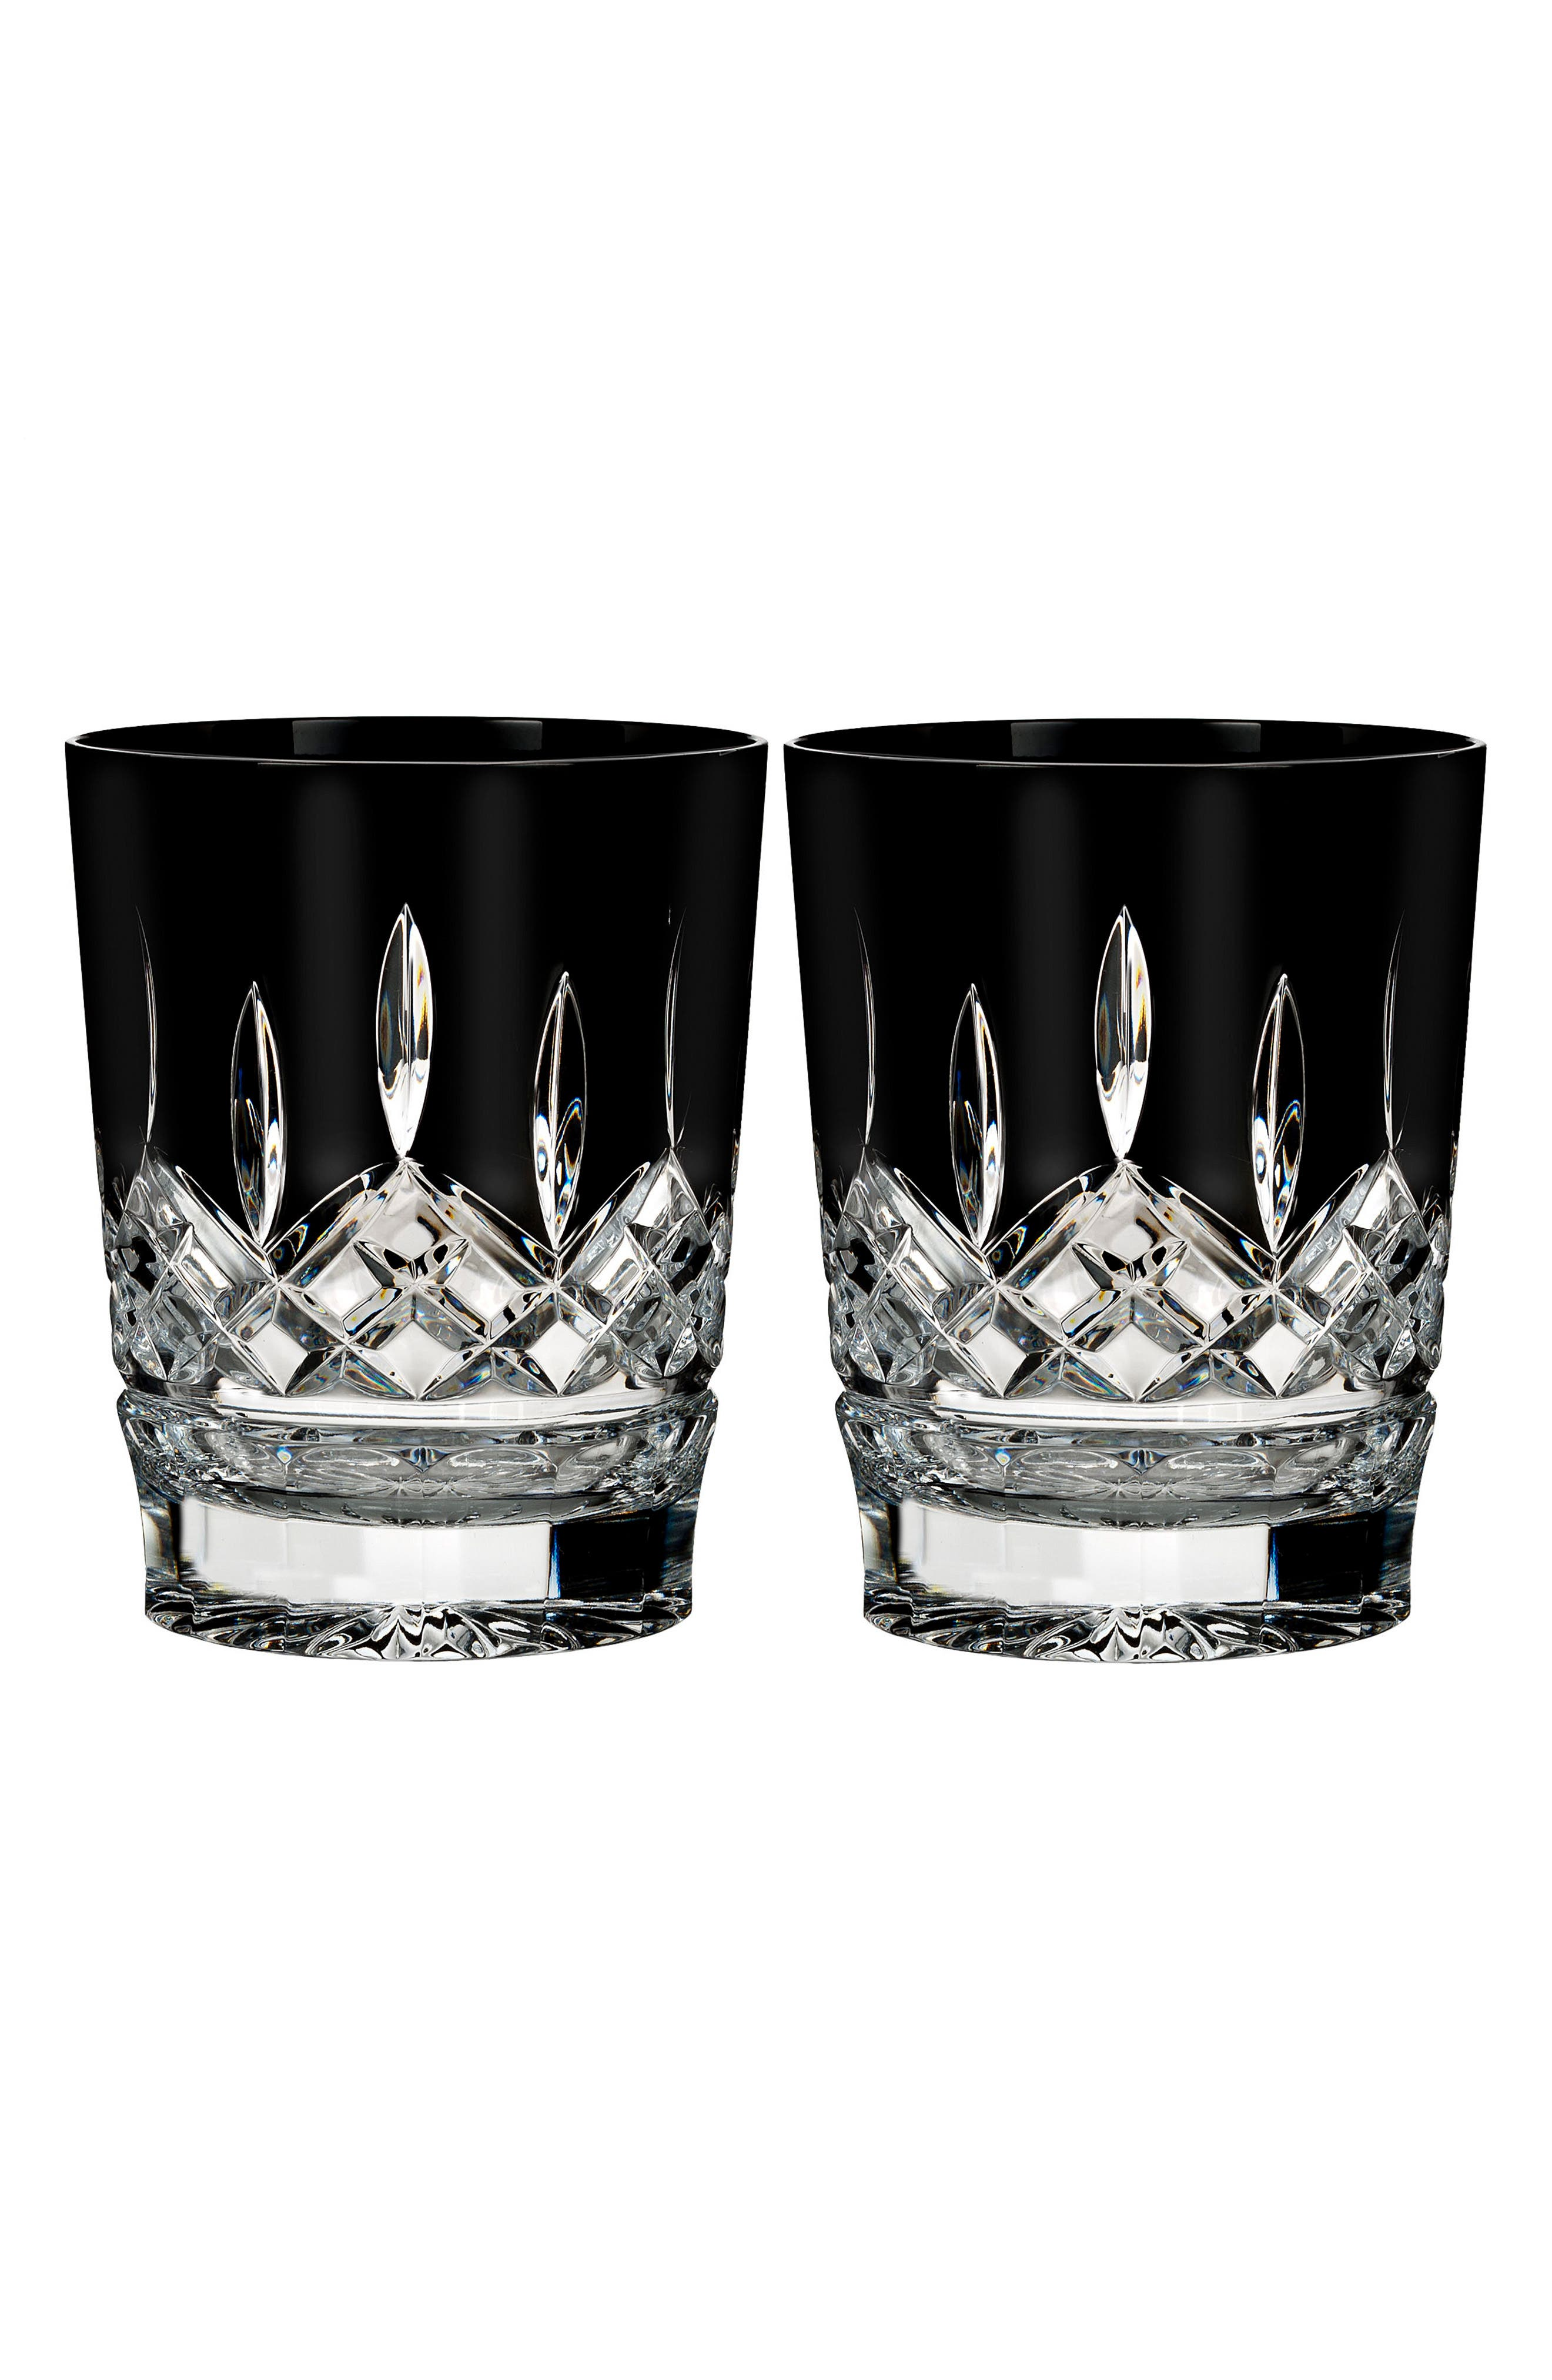 Waterford Lismore Diamond Set of 2 Black Lead Crystal Double Old Fashioned Glasses